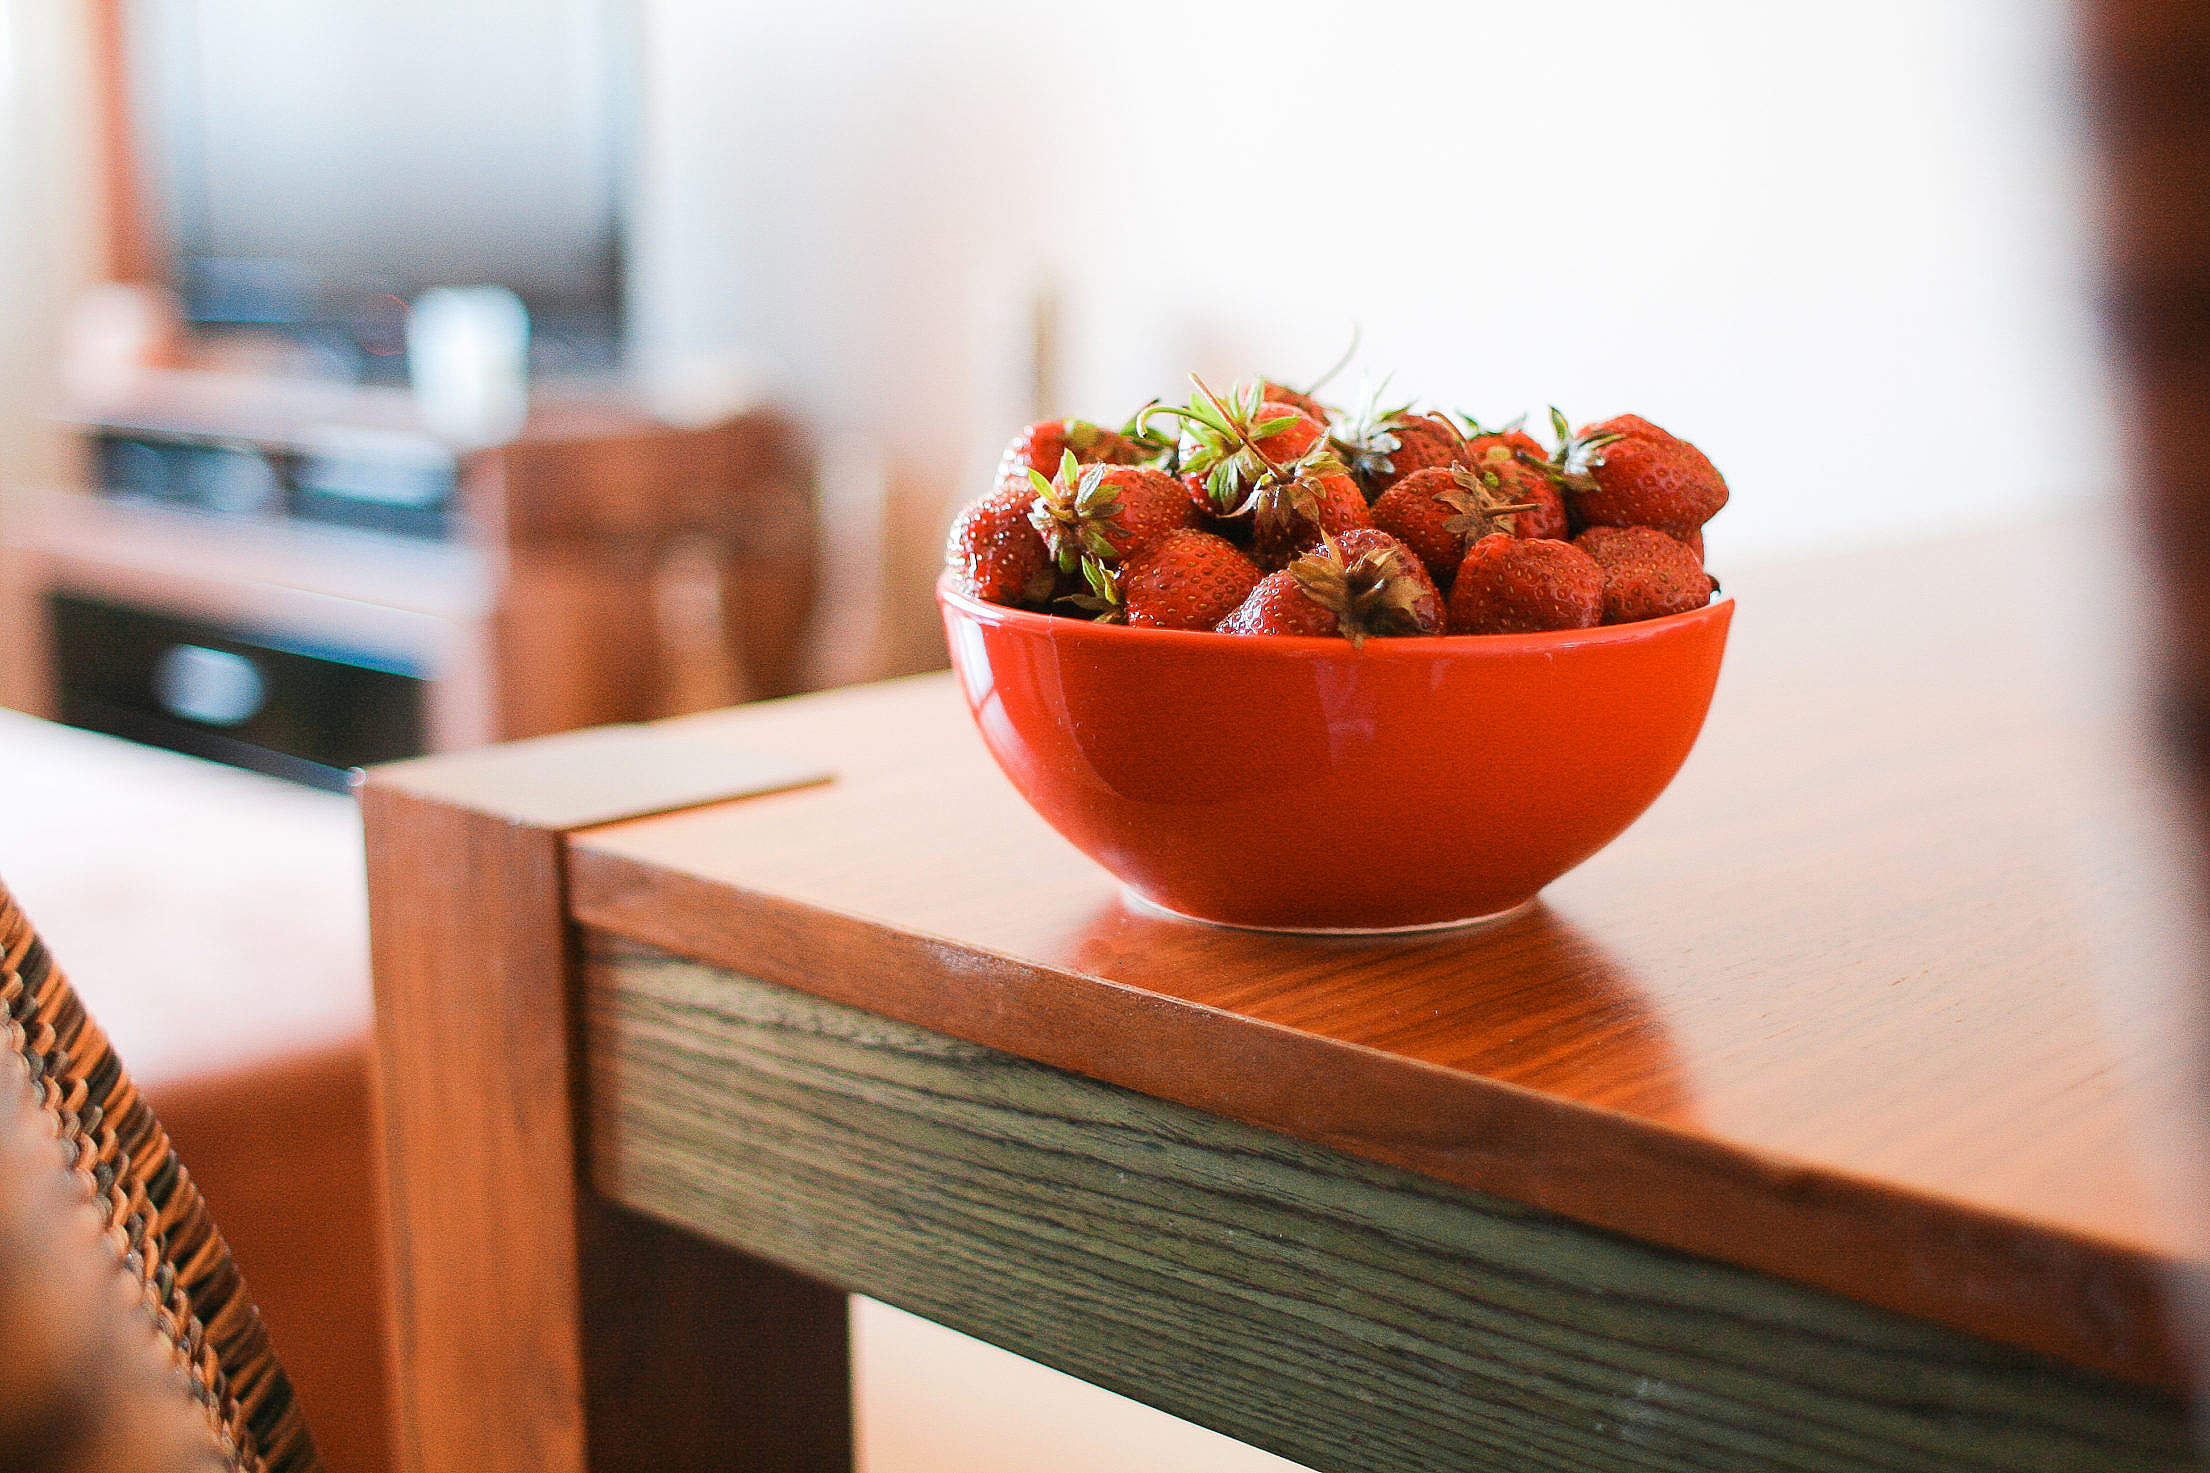 Strawberries on the Table Free Stock Photo